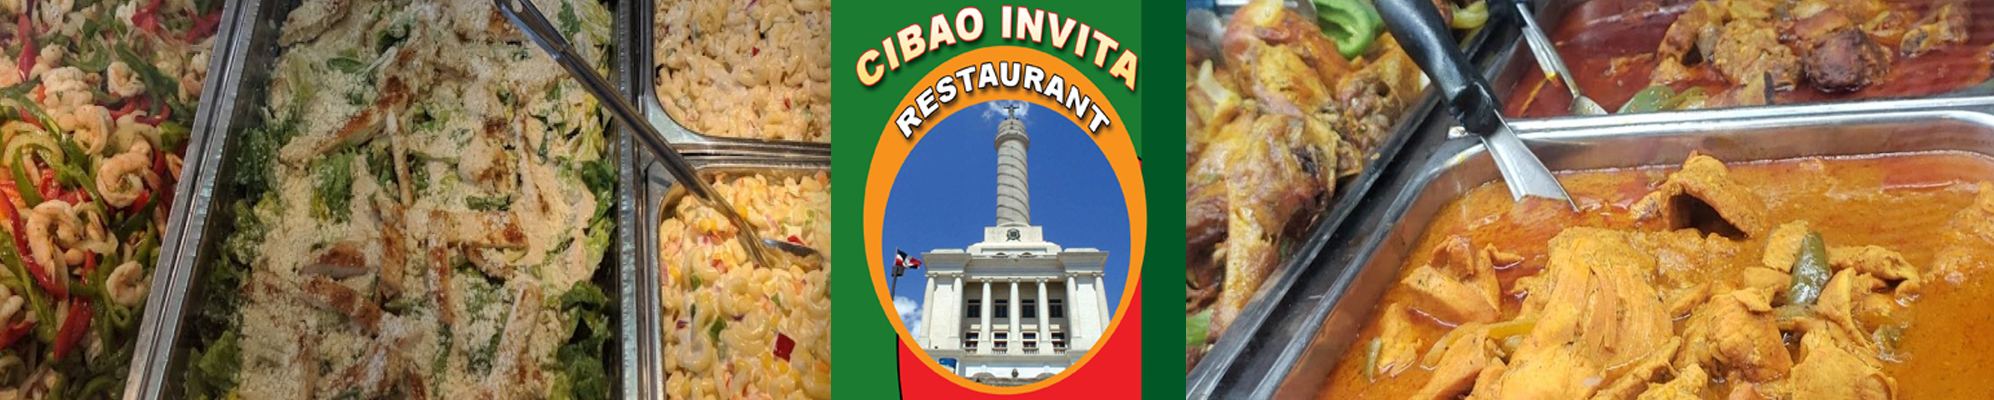 Welcome to <b>Cibao